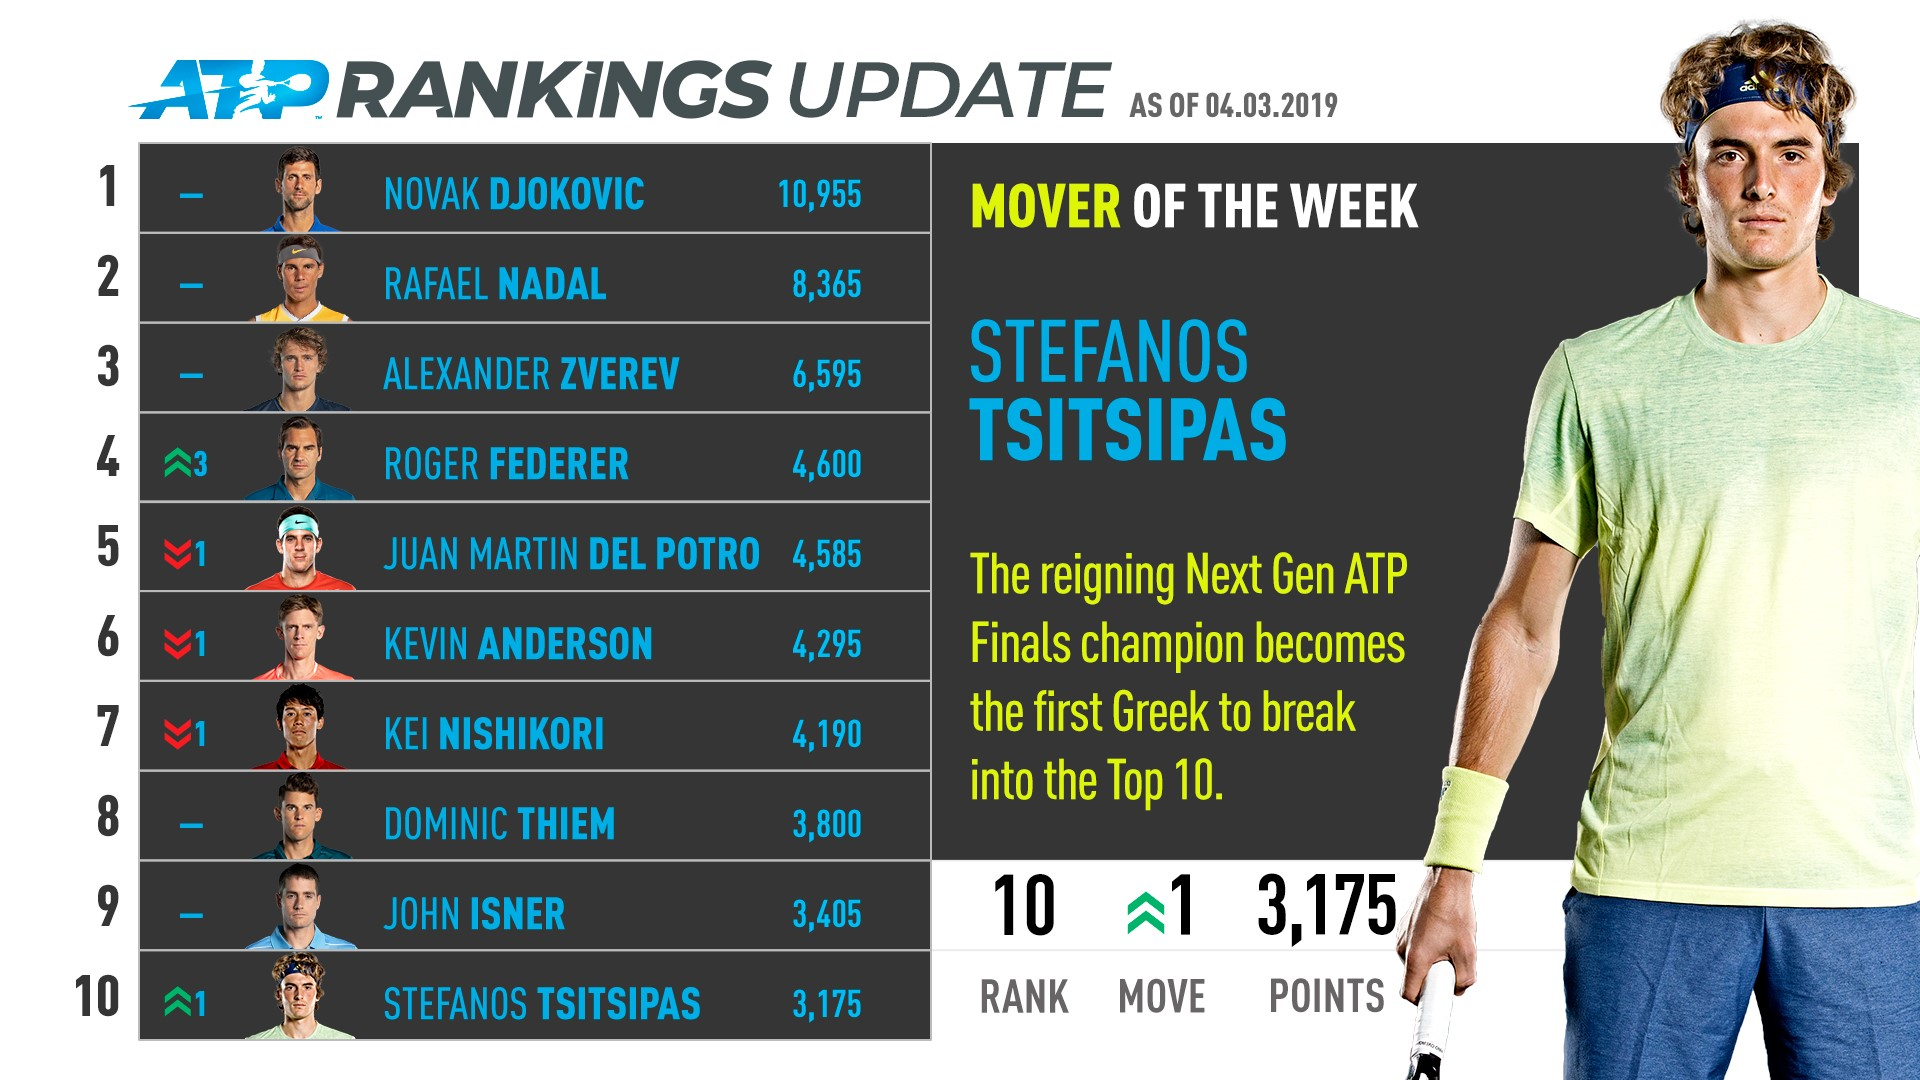 Tsitsipas, Dubai finalist and ATP Rankings Mover of the Week